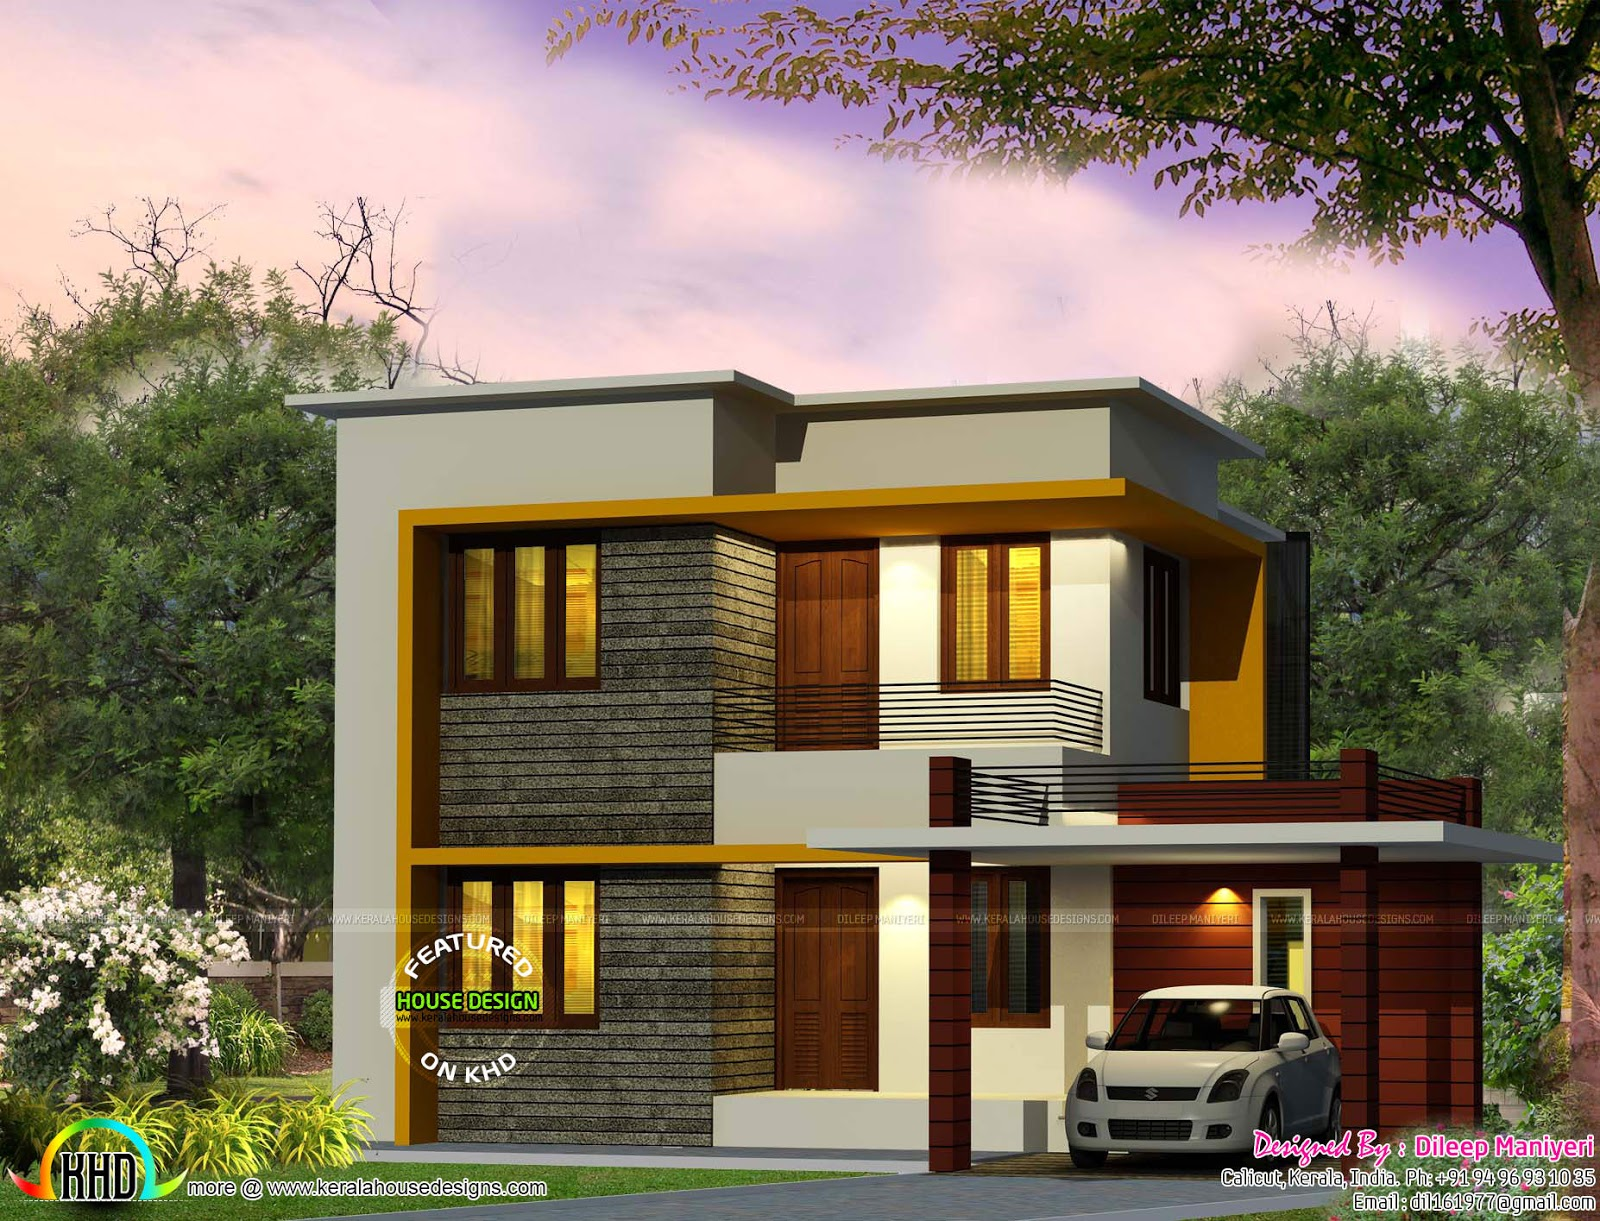 Cute 4 bedroom modern house 1670 sq ft kerala home for Cute house plans